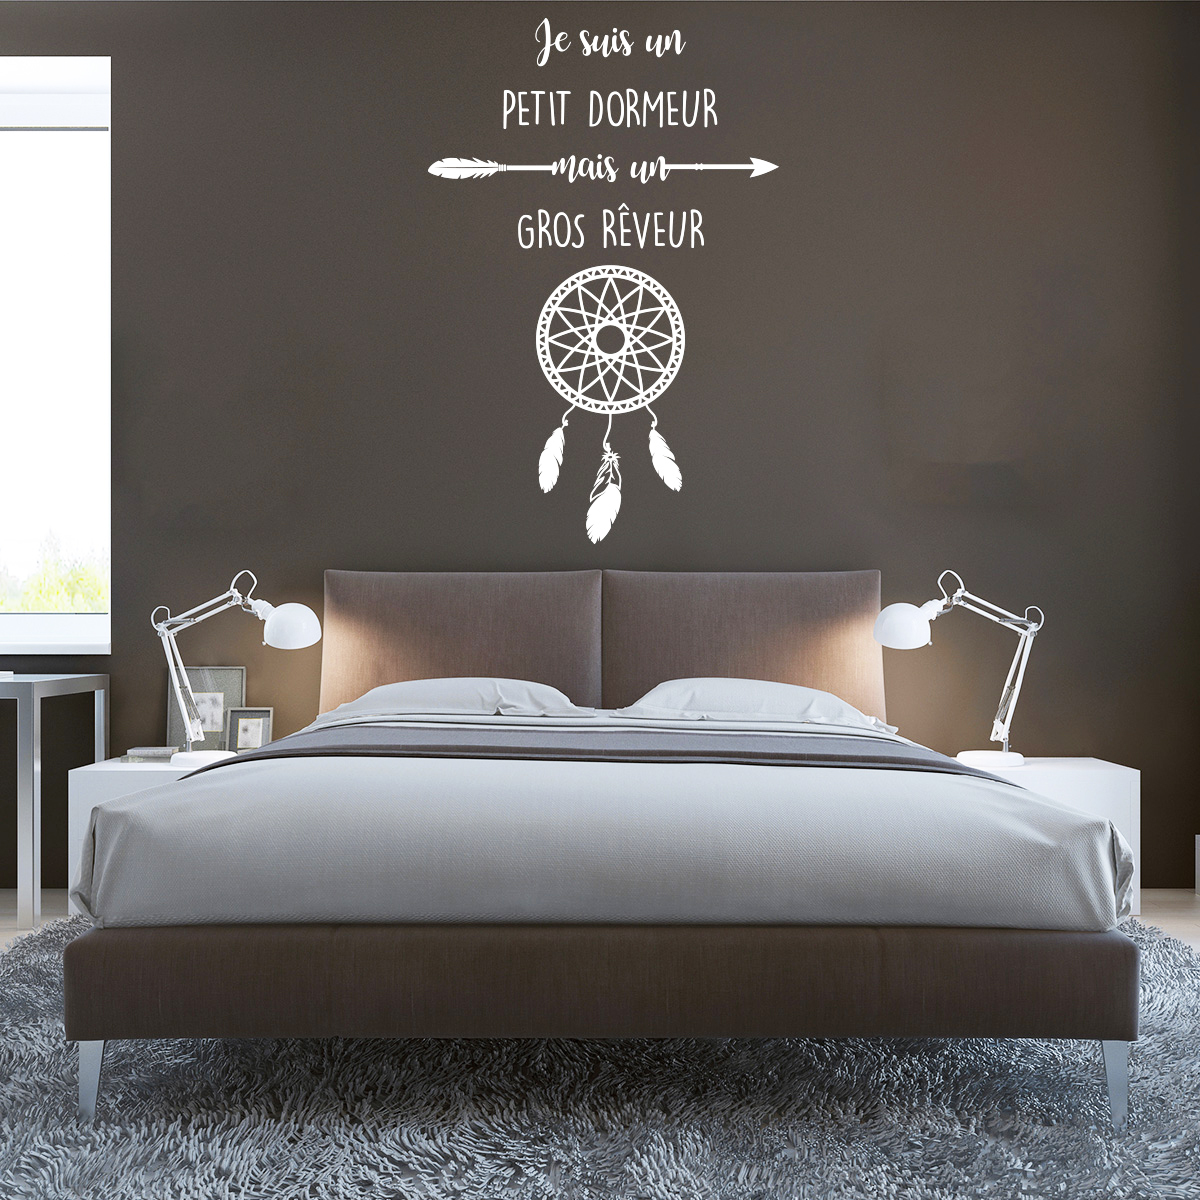 sticker citation je suis un petit dormeur attrape r ve stickers citations fran ais. Black Bedroom Furniture Sets. Home Design Ideas